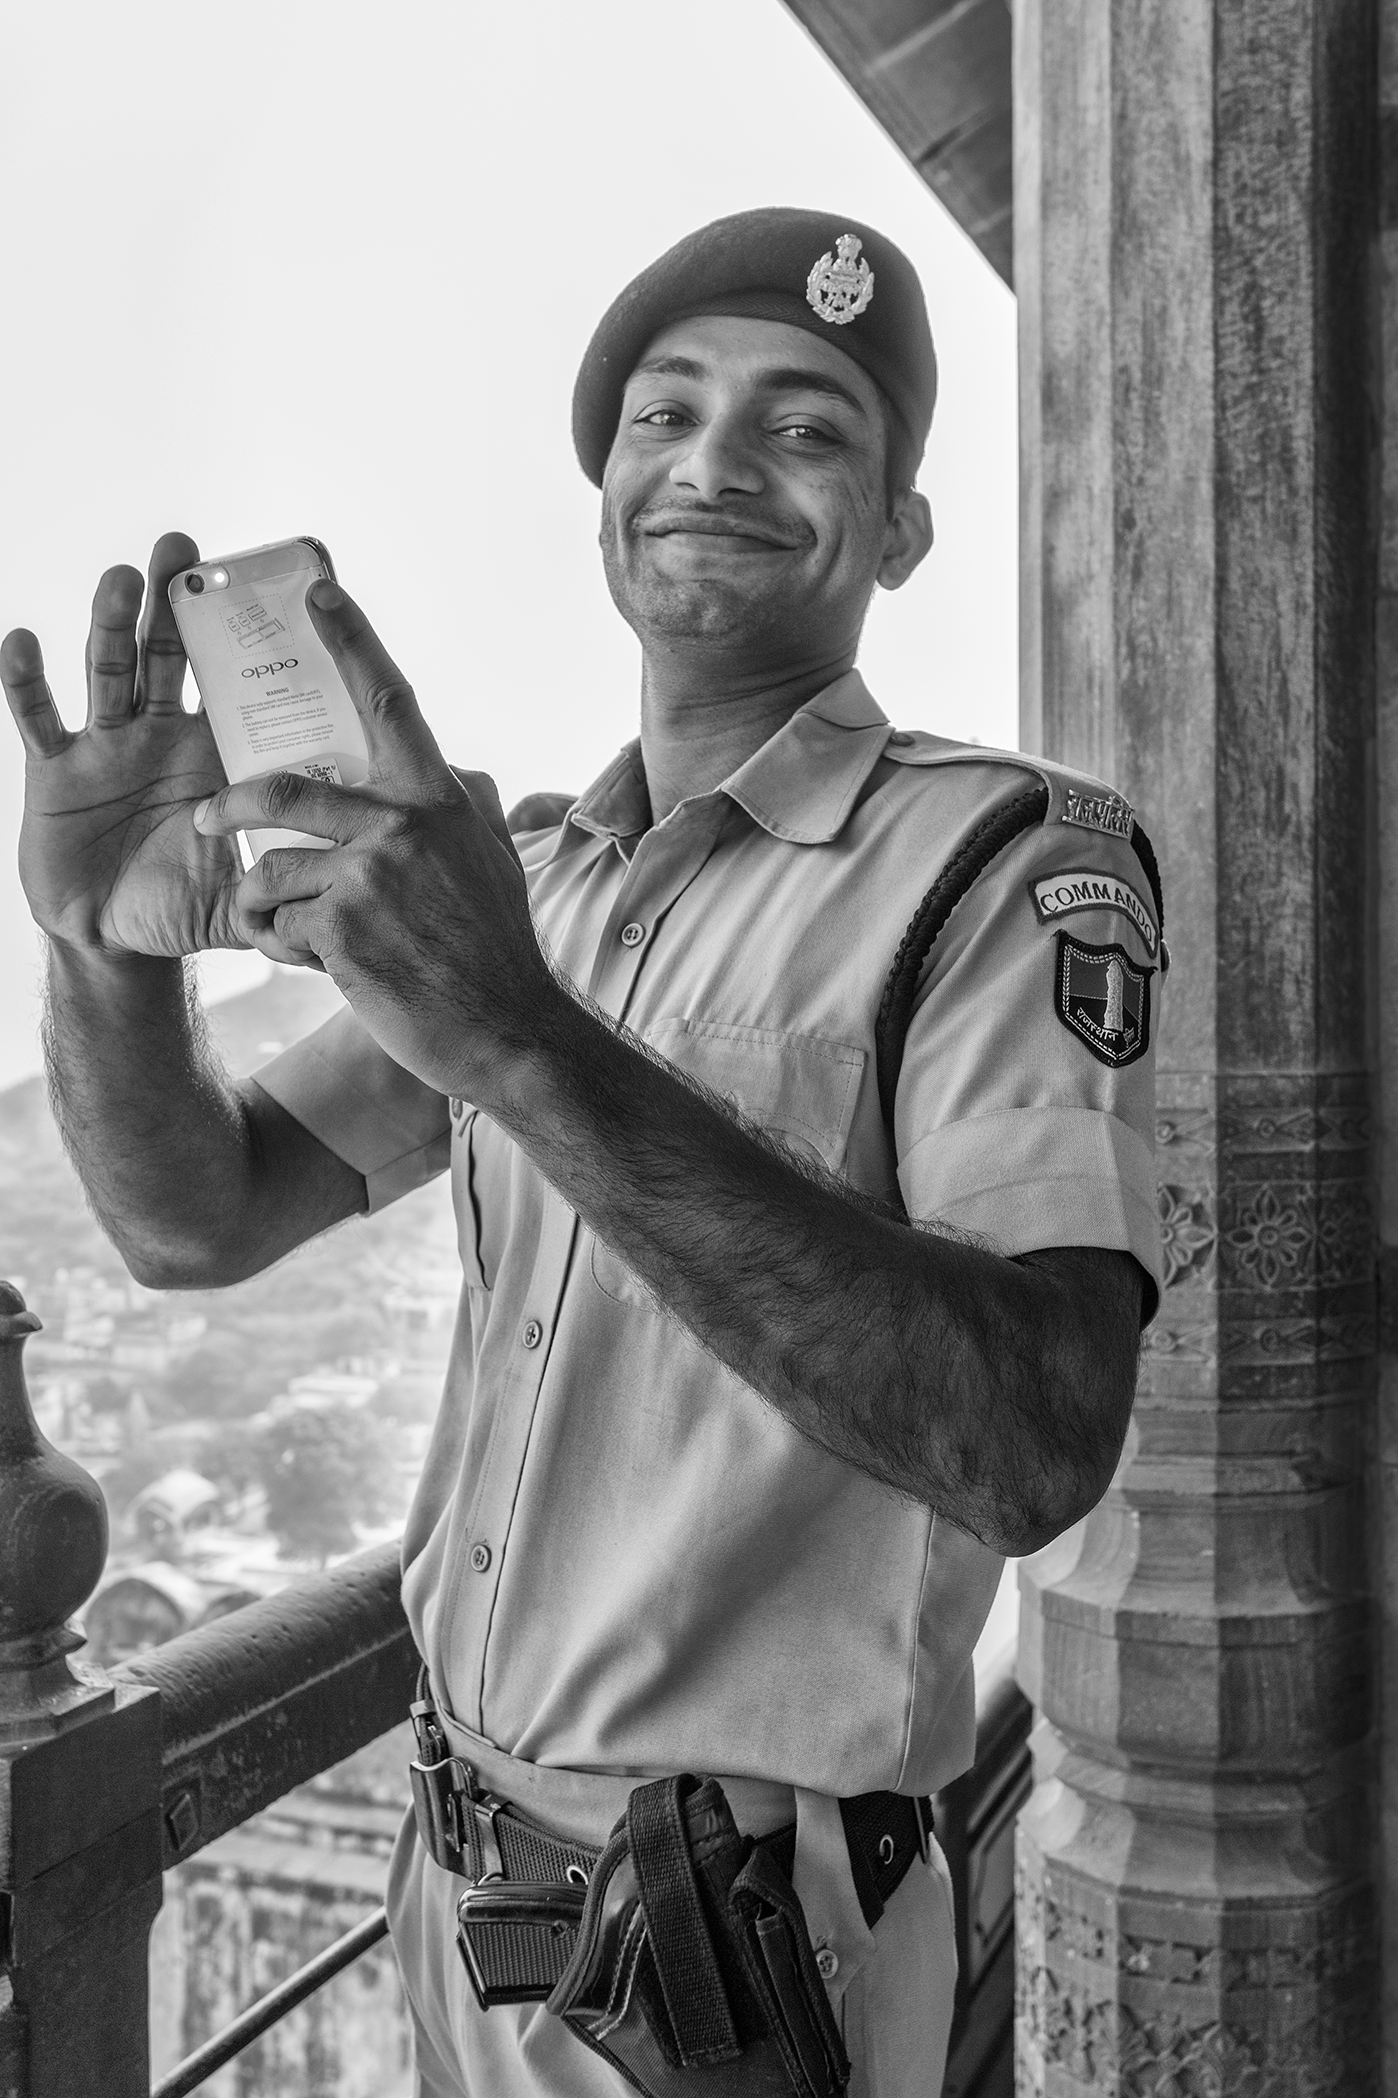 India Rajasthan Soldier with cell phone.jpg